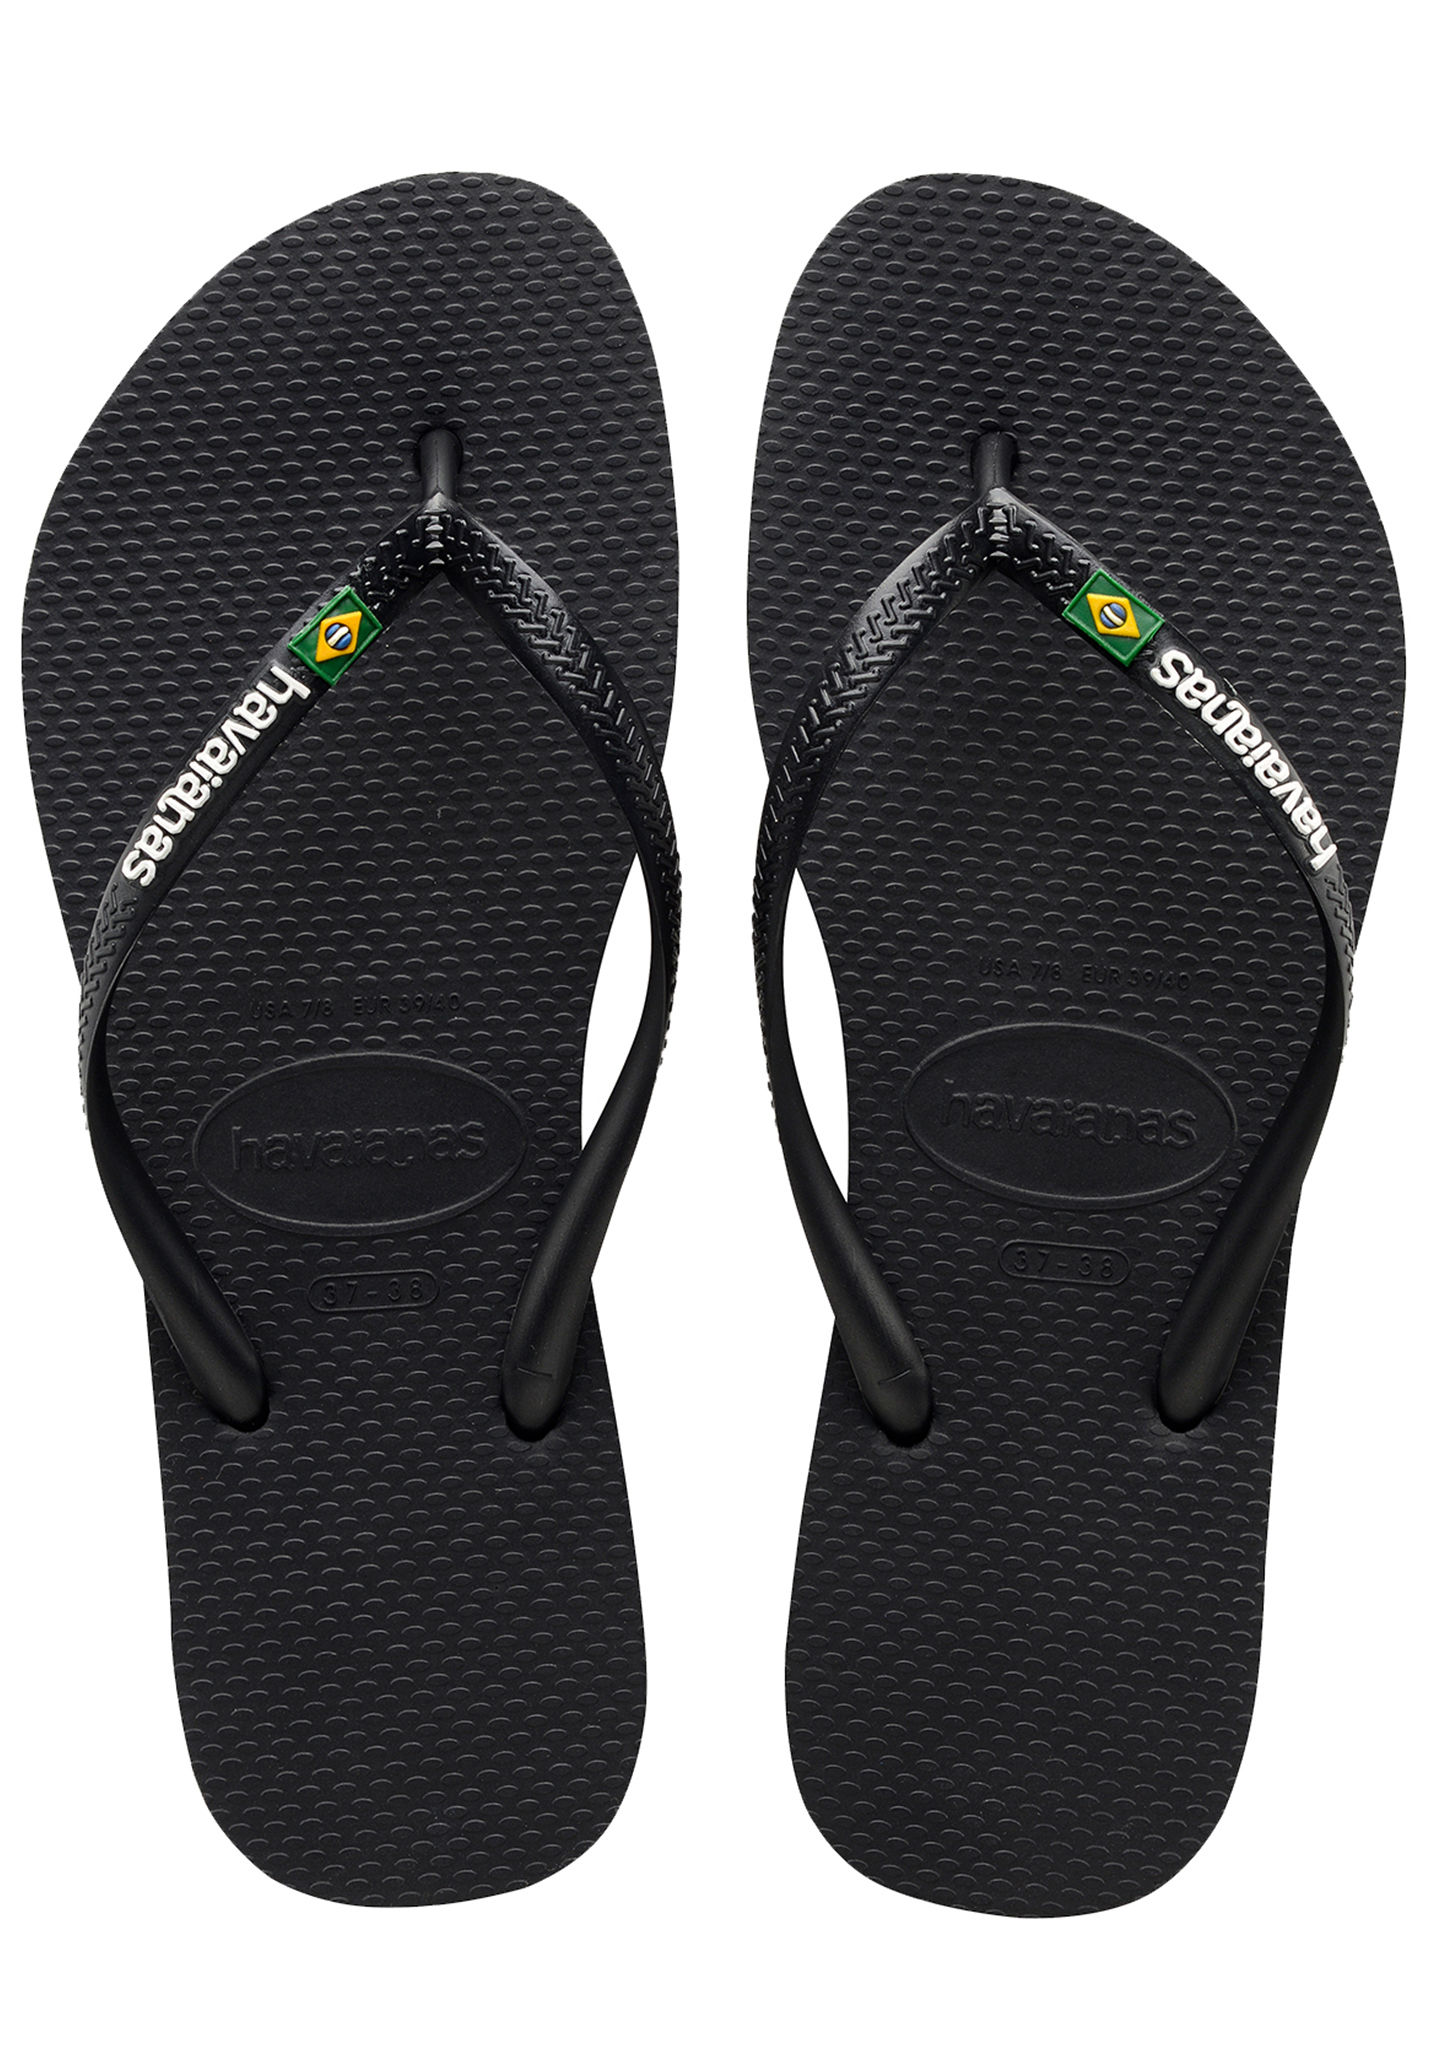 5621aa90cad85 HAVAIANAS Slim Brasil Logo - Sandals for Women - Black - Planet Sports